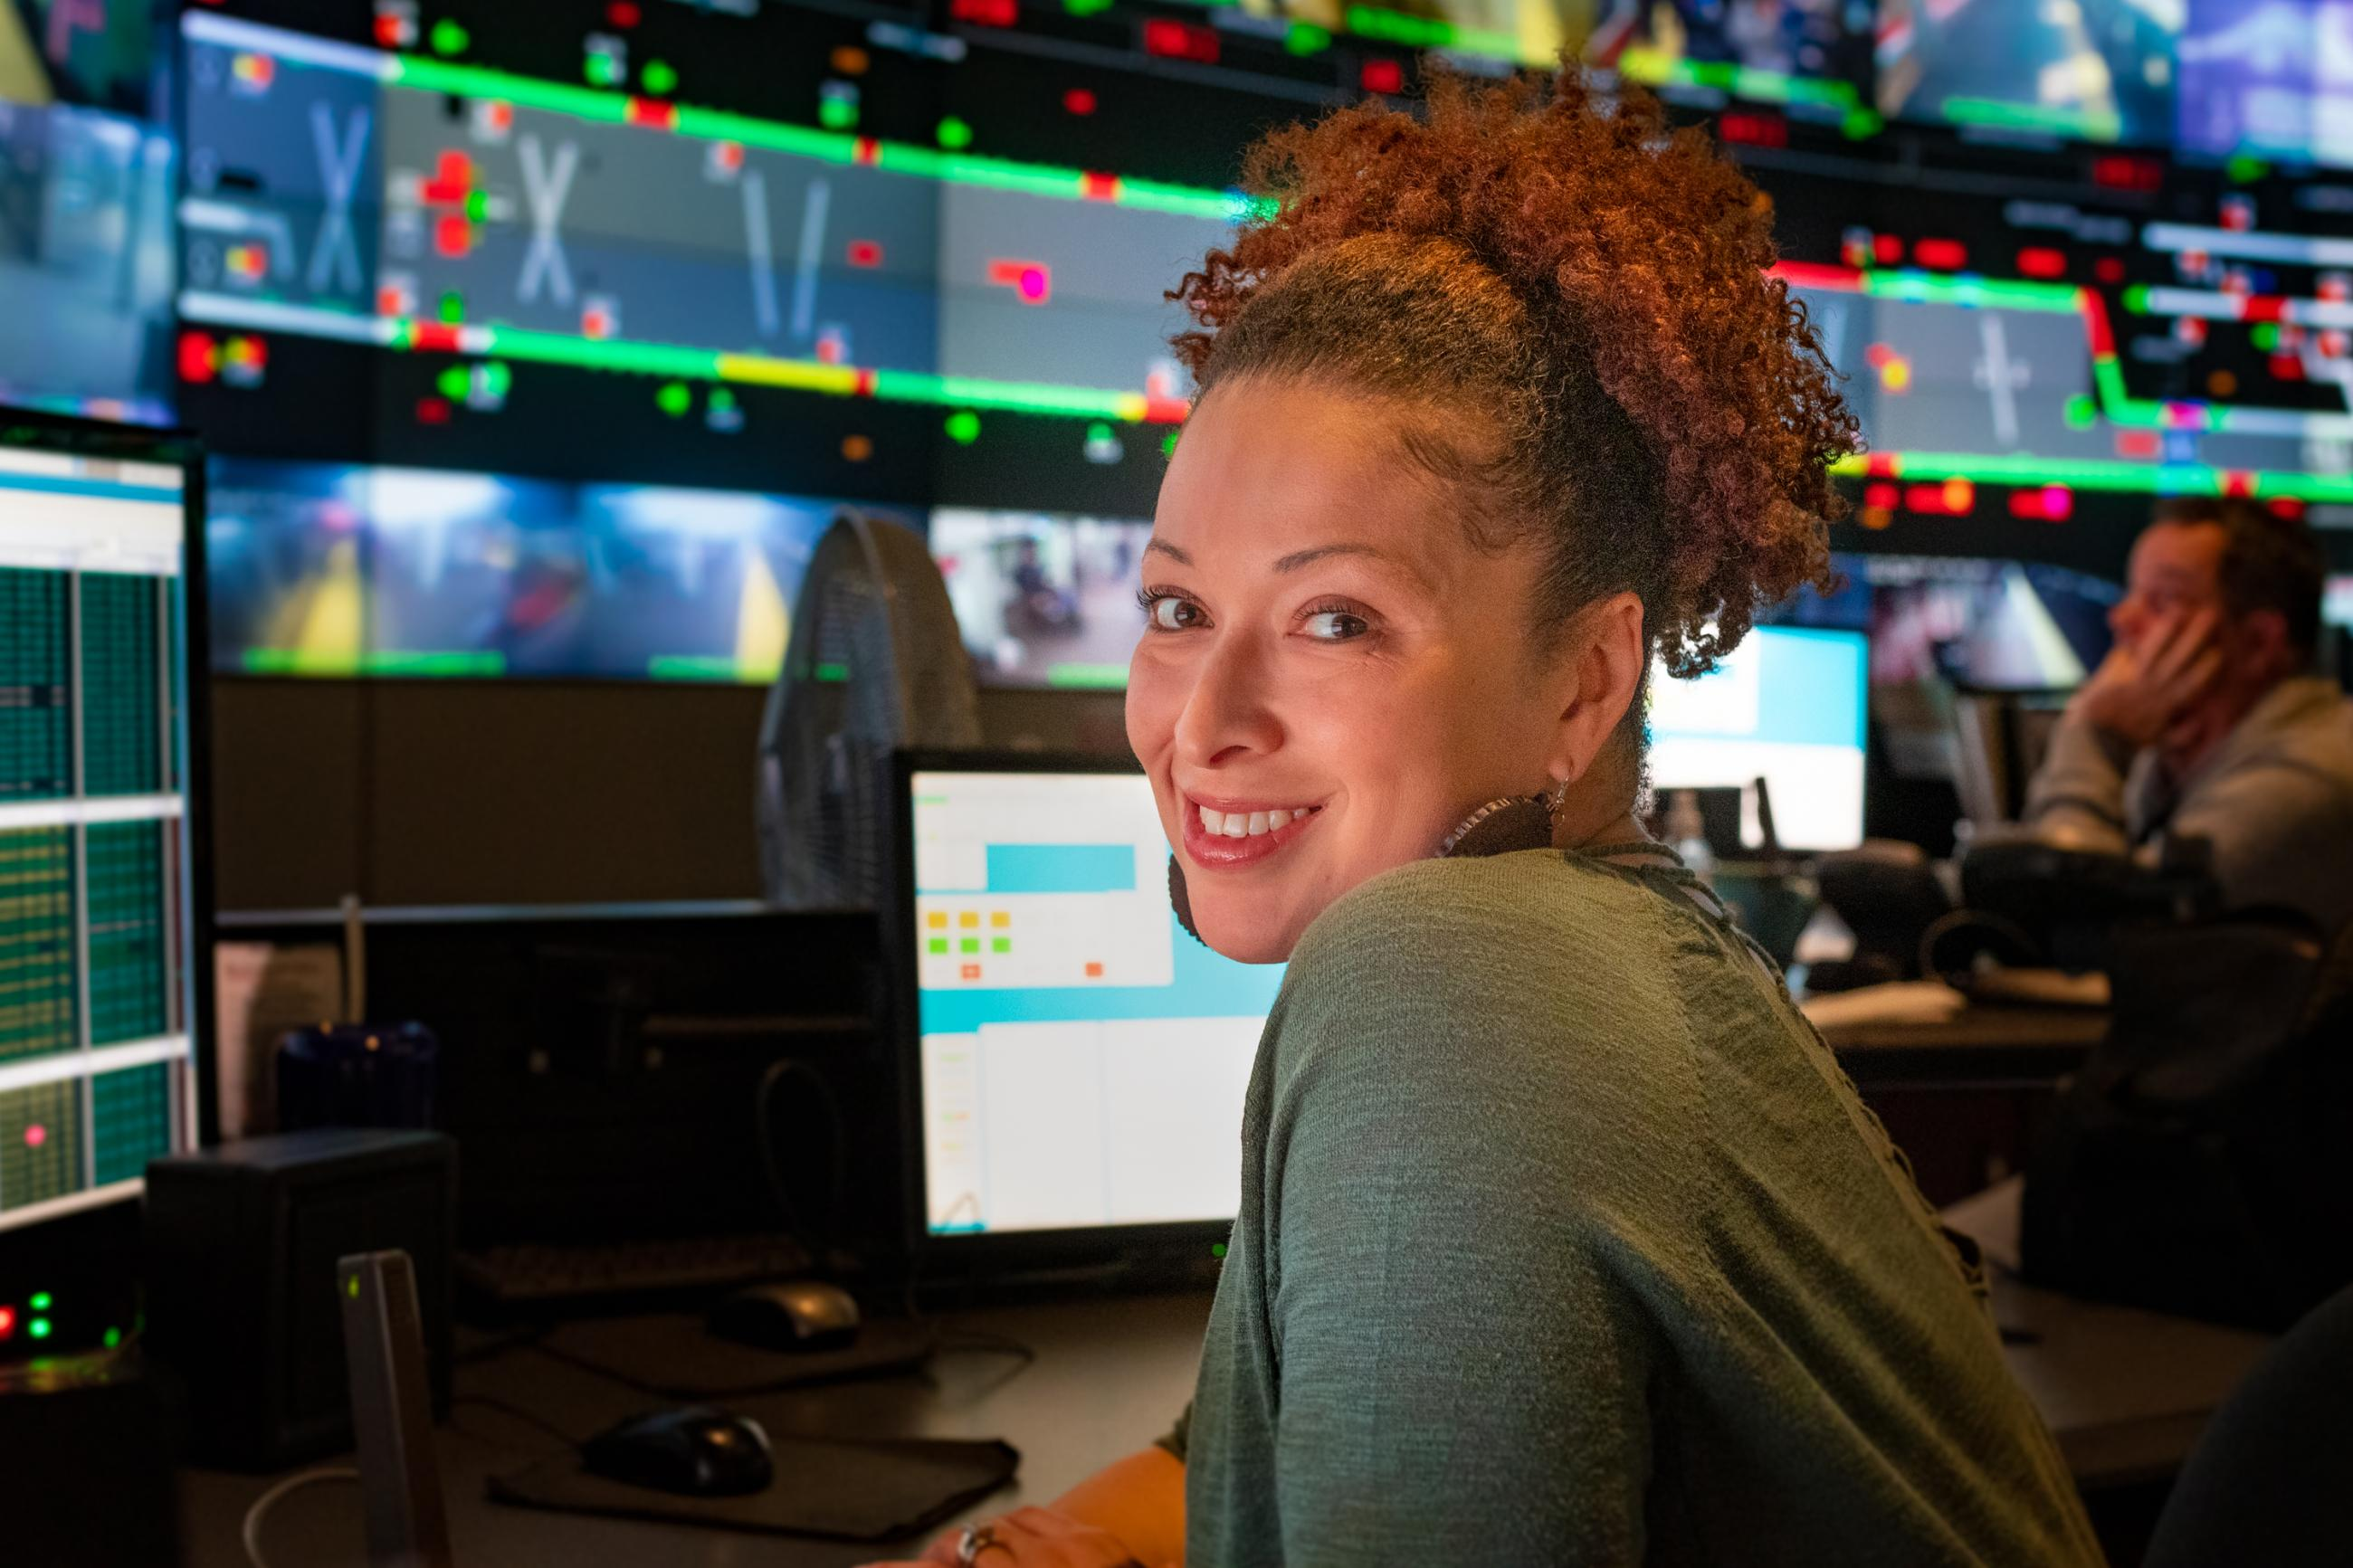 An employee at the Operations Control Center, with computer screens behind her